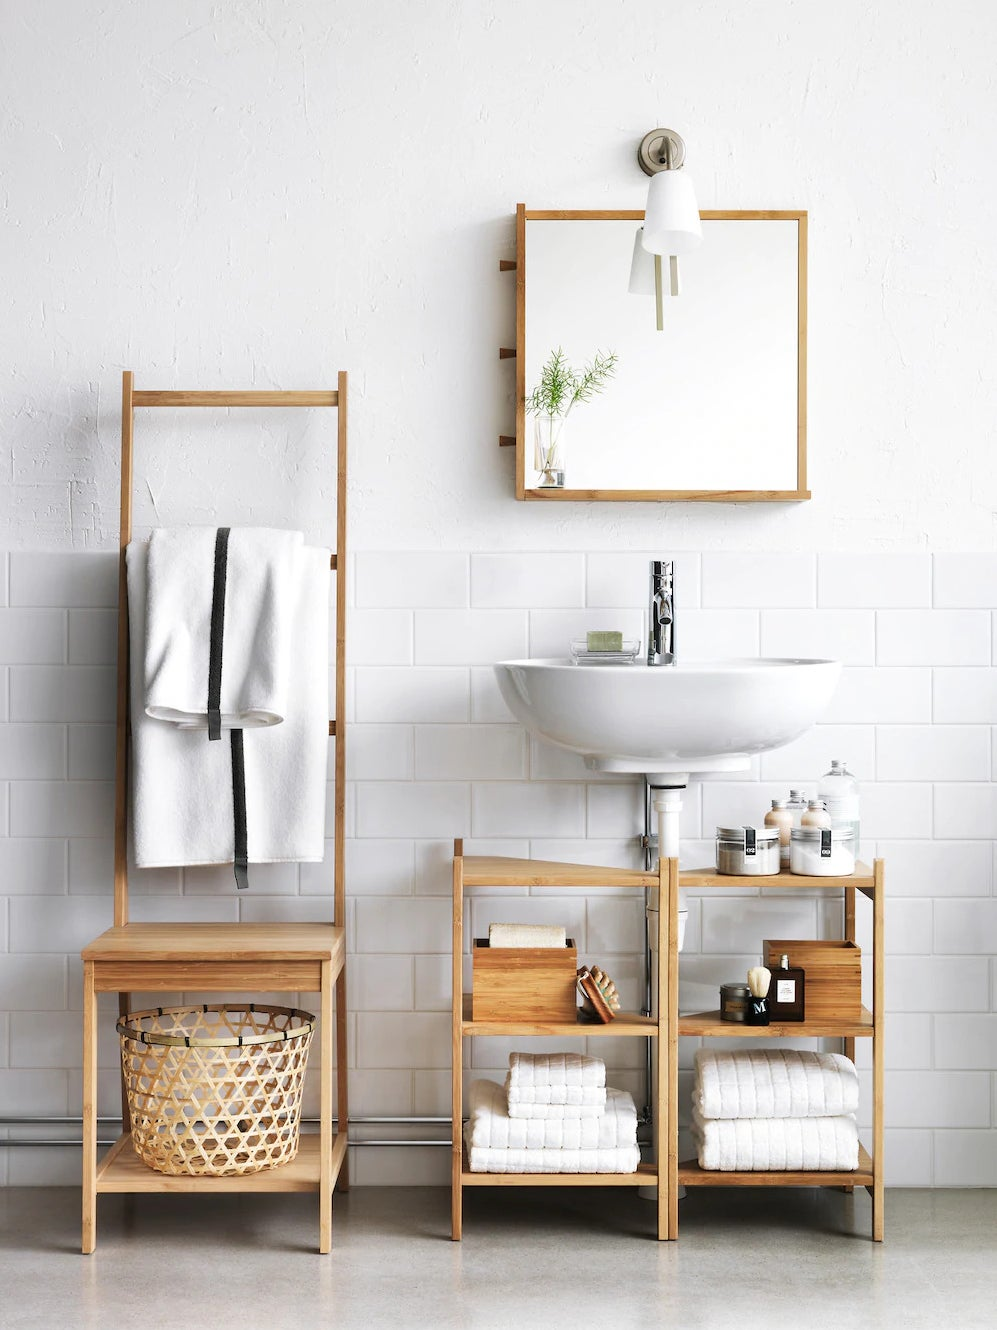 00-FEATURE-ikea-bathroom-finds-domino_02